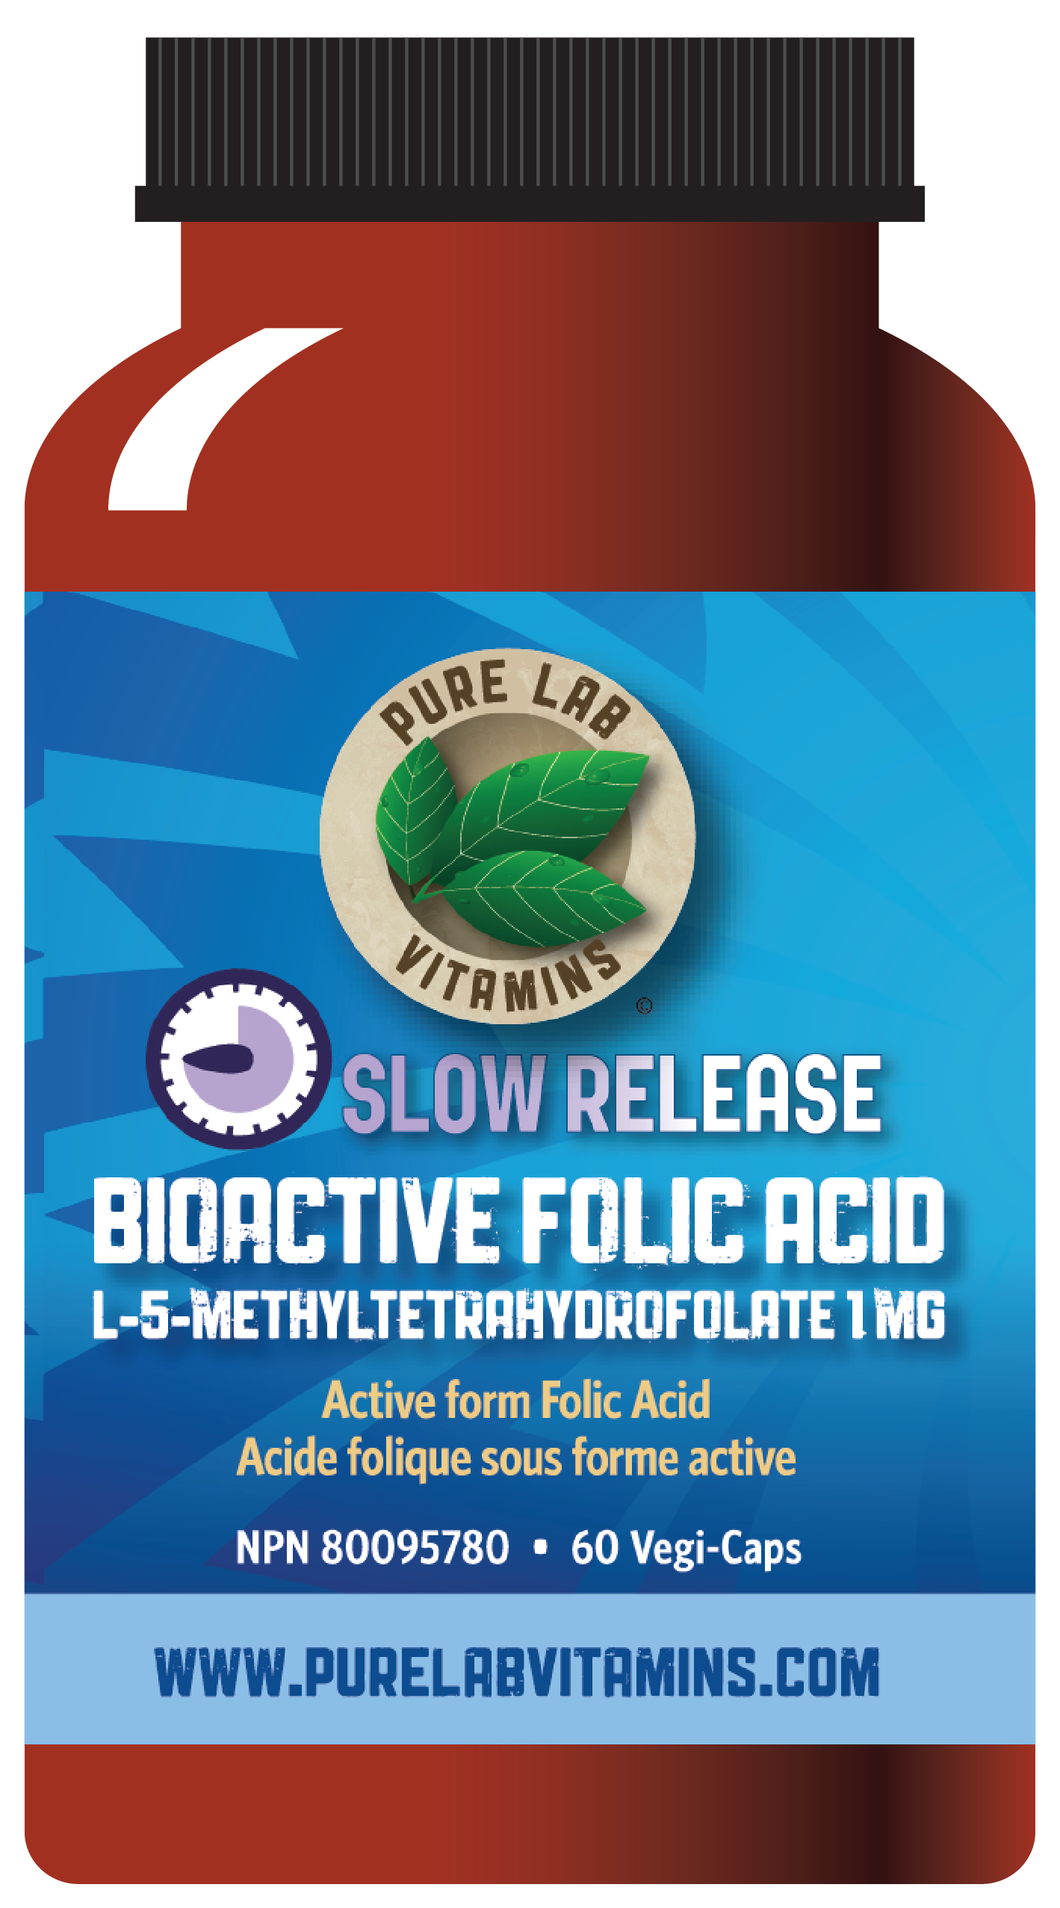 Pure Lab Bioactive Folic Acid 1mg Slow Release 60 Capsules